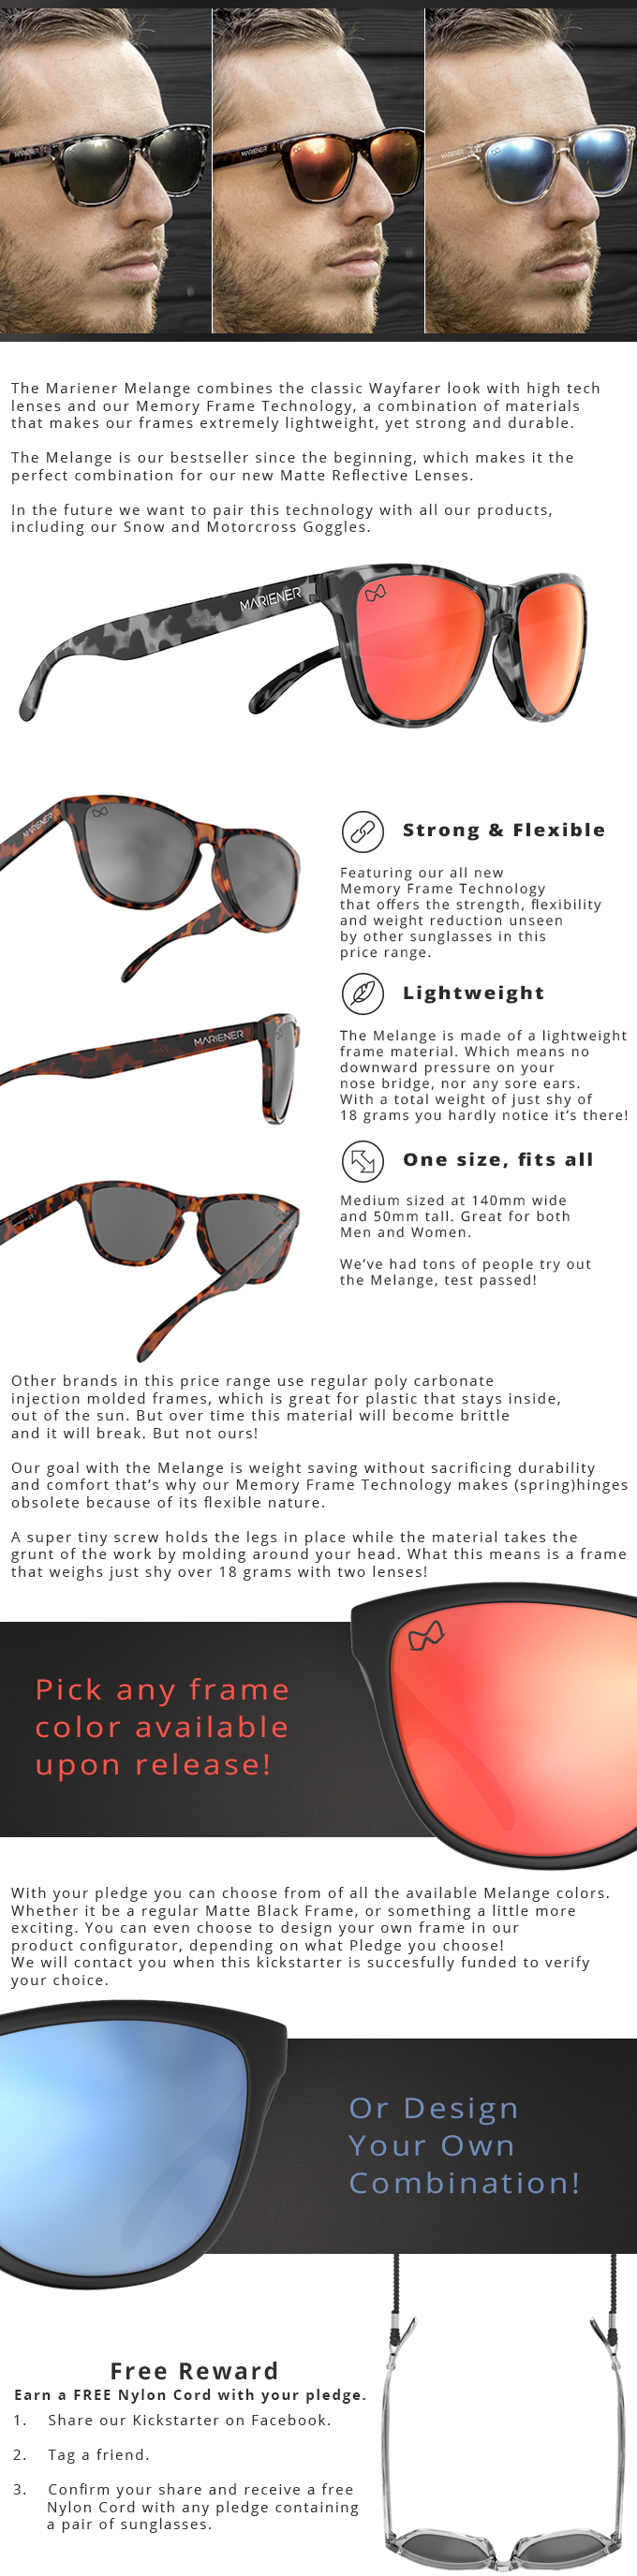 13fba41444 First Affordable Matte Reflective Sunglasses. by Mariener Eyewear ...